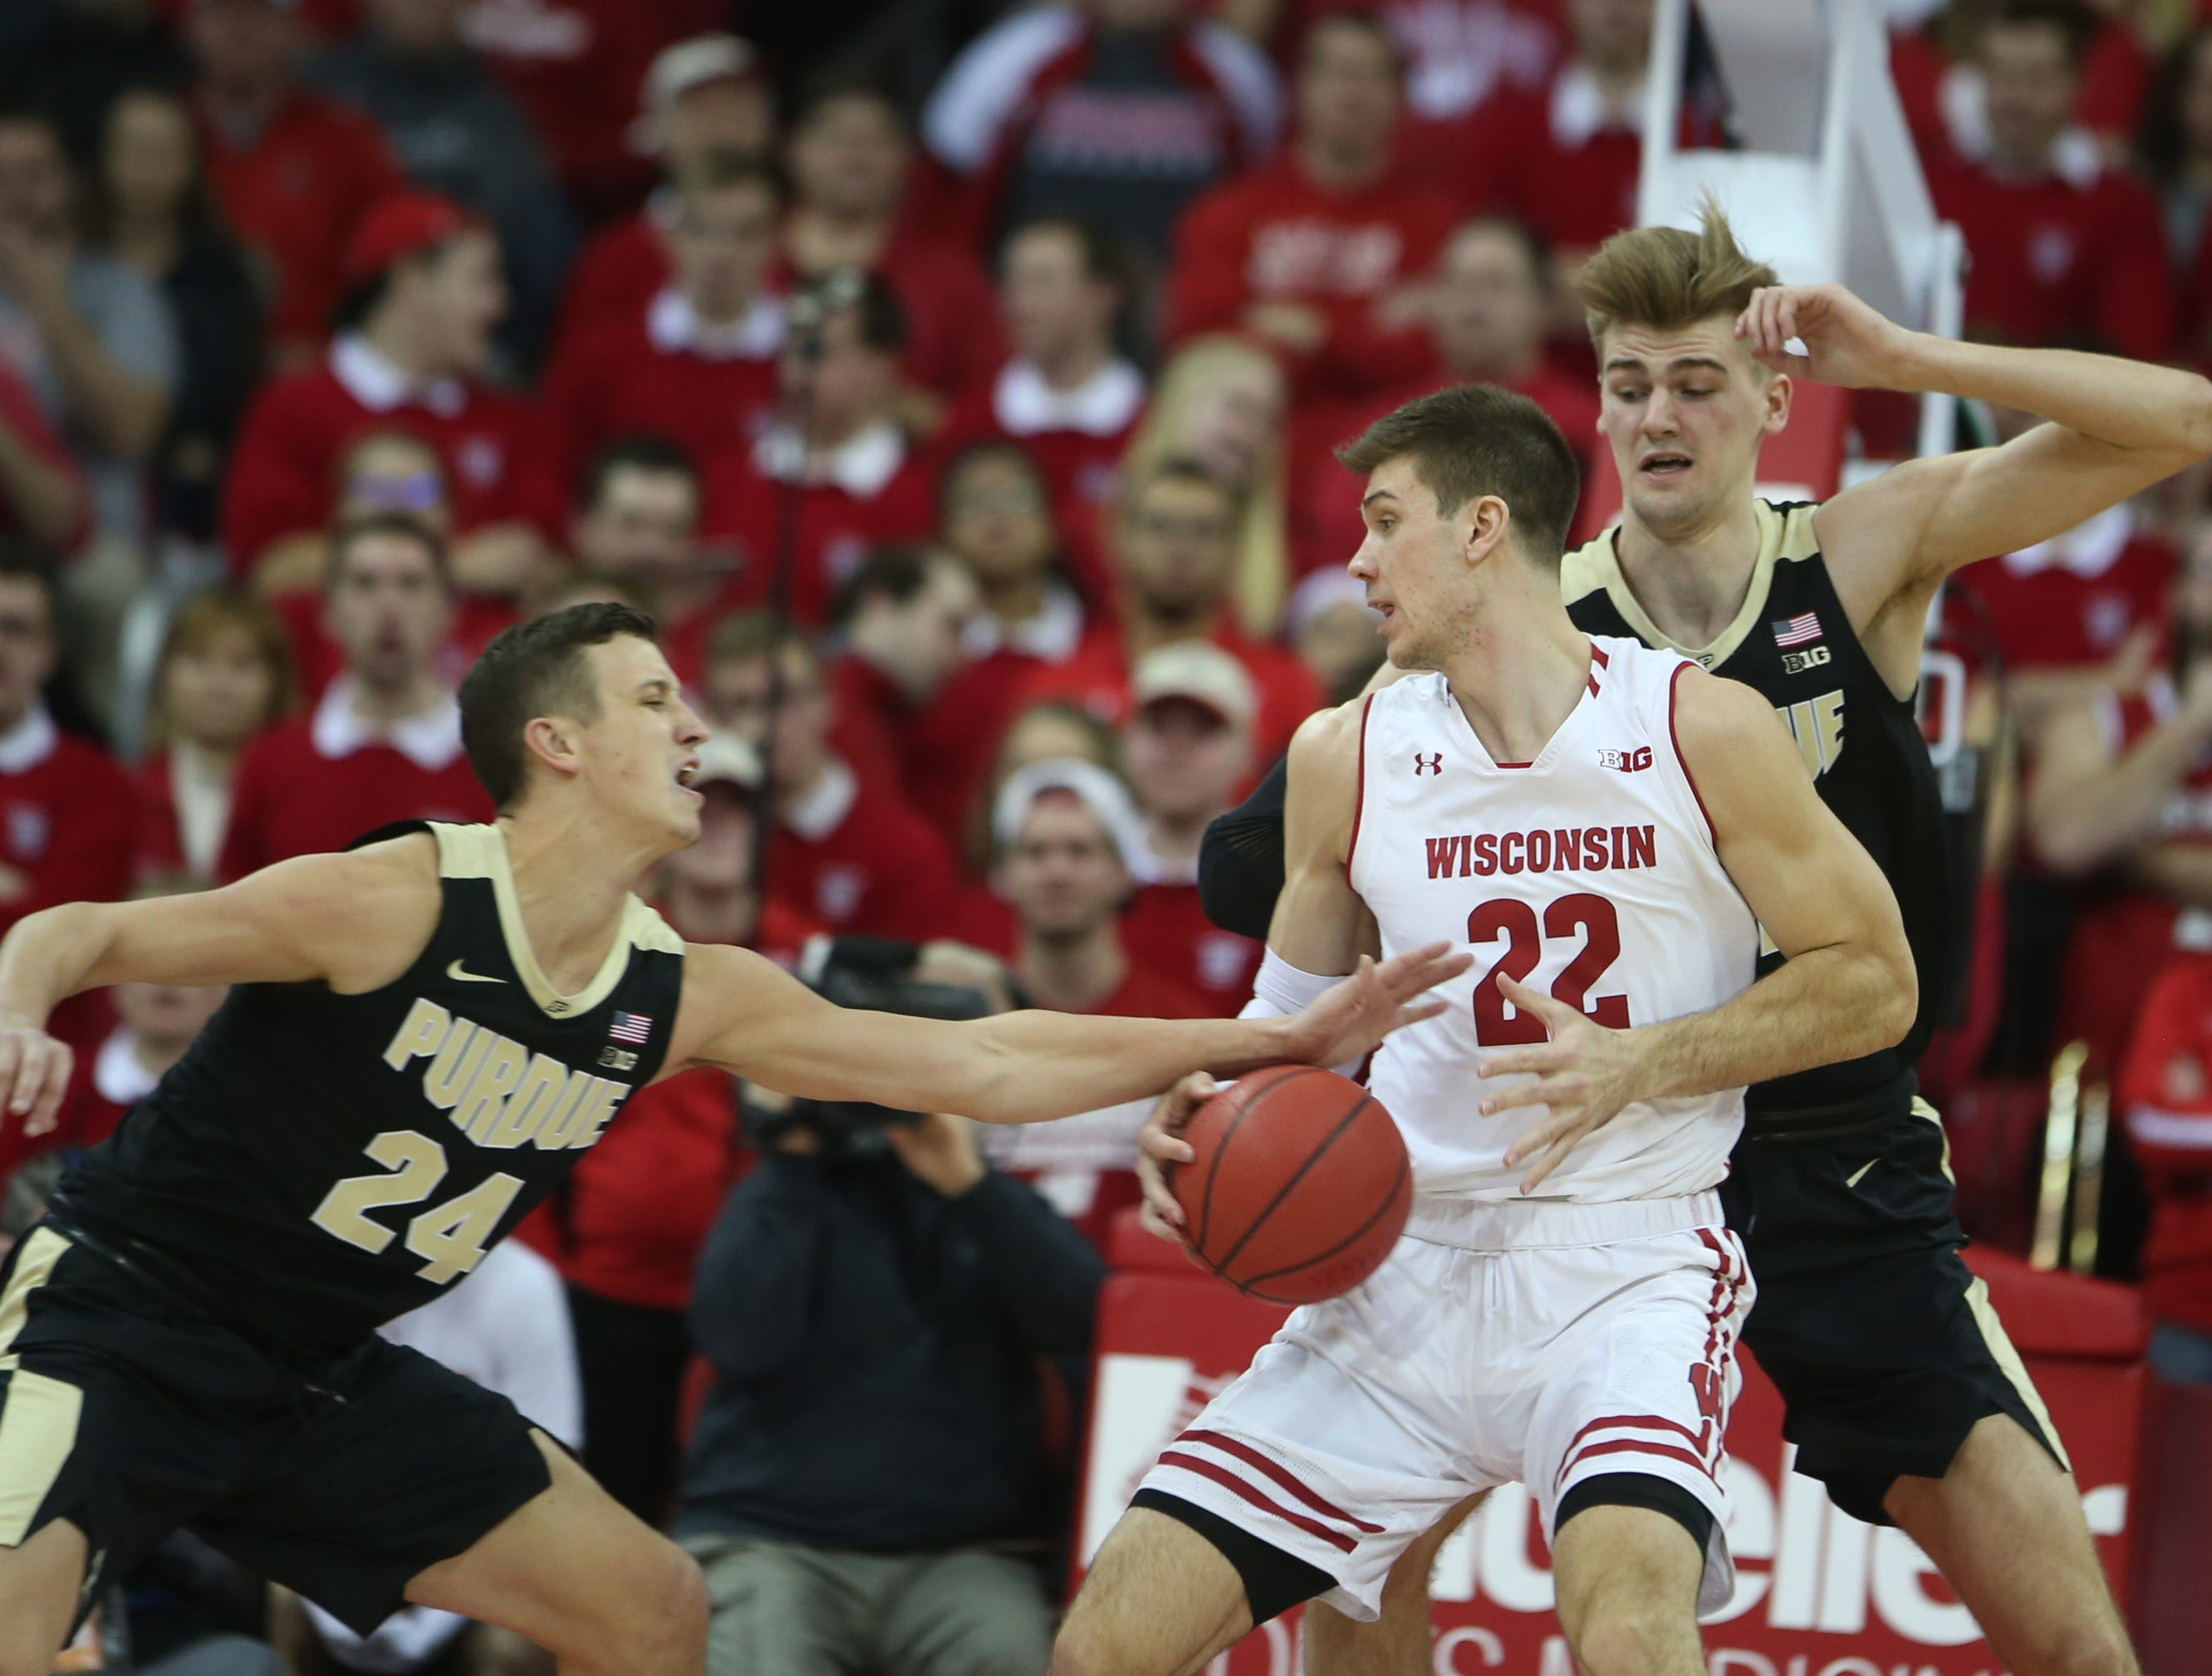 Jan 11, 2019; Madison, WI, USA; Wisconsin Badgers forward Ethan Happ (22) looks to pass as Purdue Boilermakers forward Grady Eifert (24) and forward Matt Haarms (right) defend during the first half at the Kohl Center. Mandatory Credit: Mary Langenfeld-USA TODAY Sports